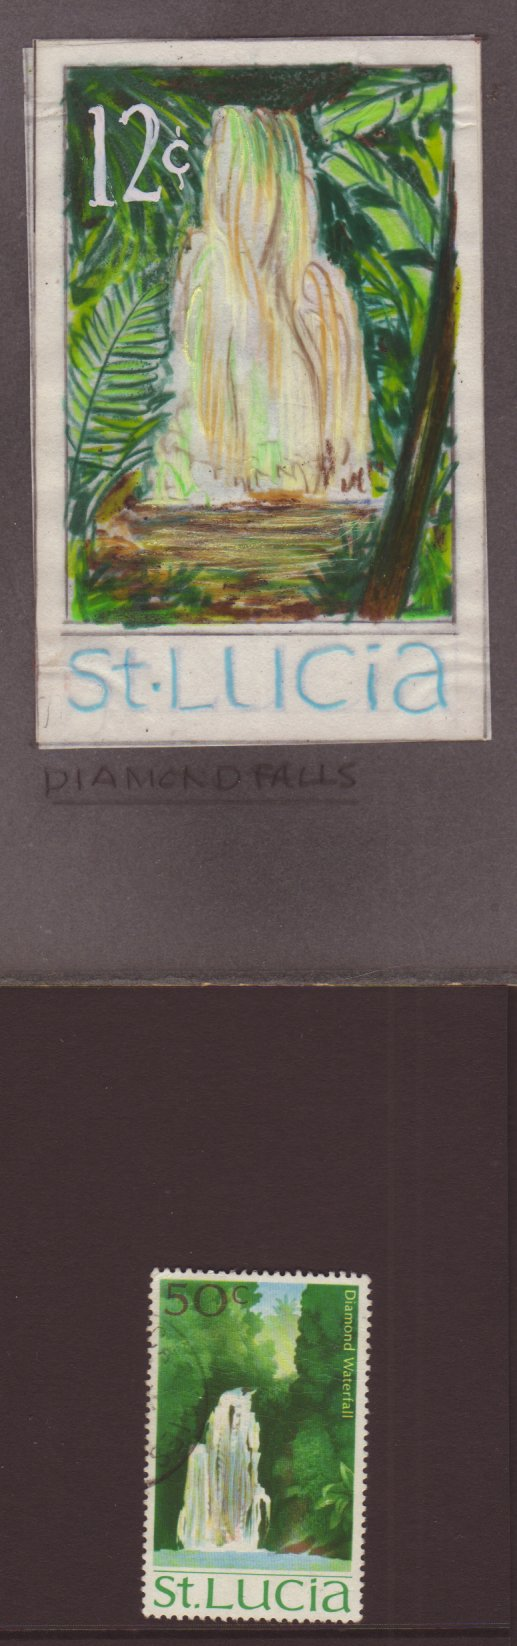 St Lucia 1970